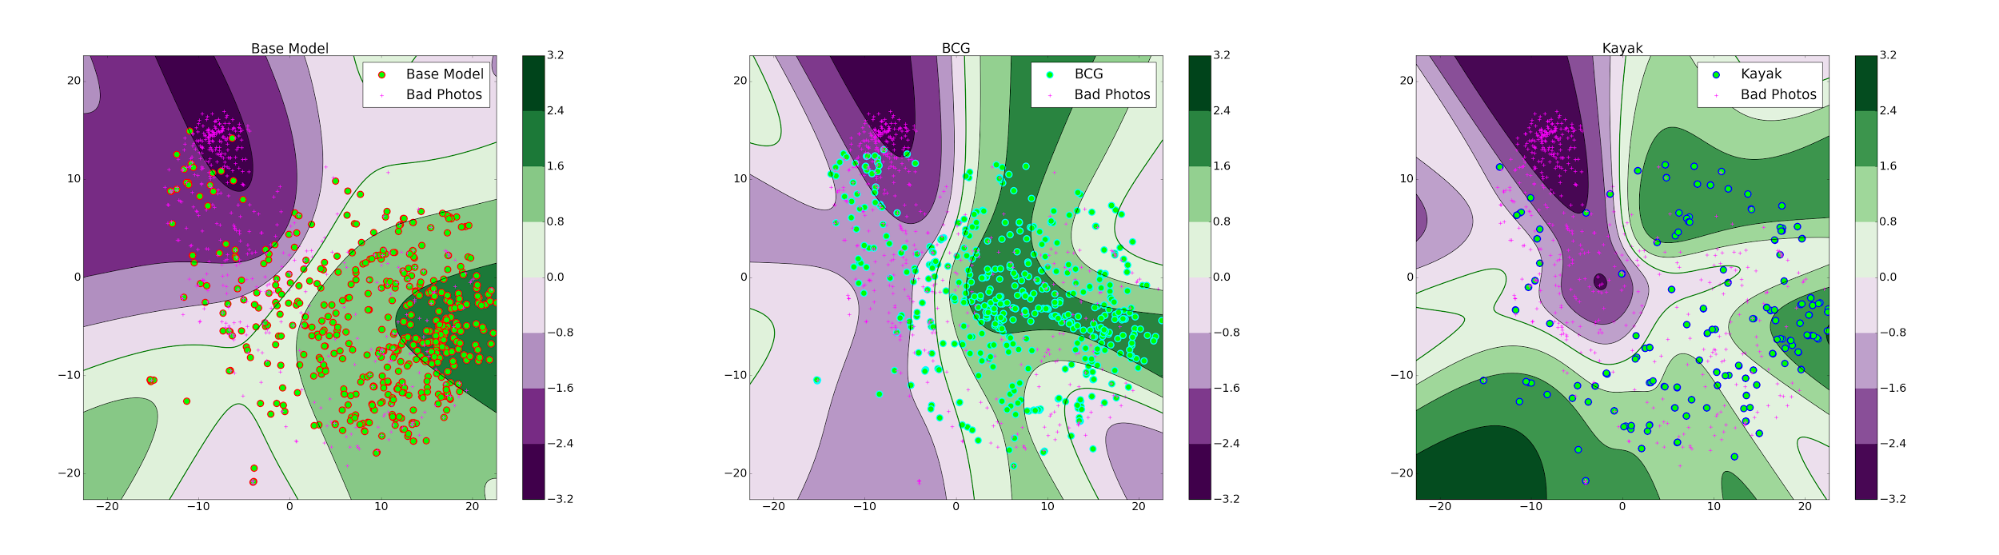 Figure 6: The contour plot of ranking scores in t-SNE space. The green regions indicate areas where a photograph is given a high rank and purple region indicate regions where a photo is given a low rank.